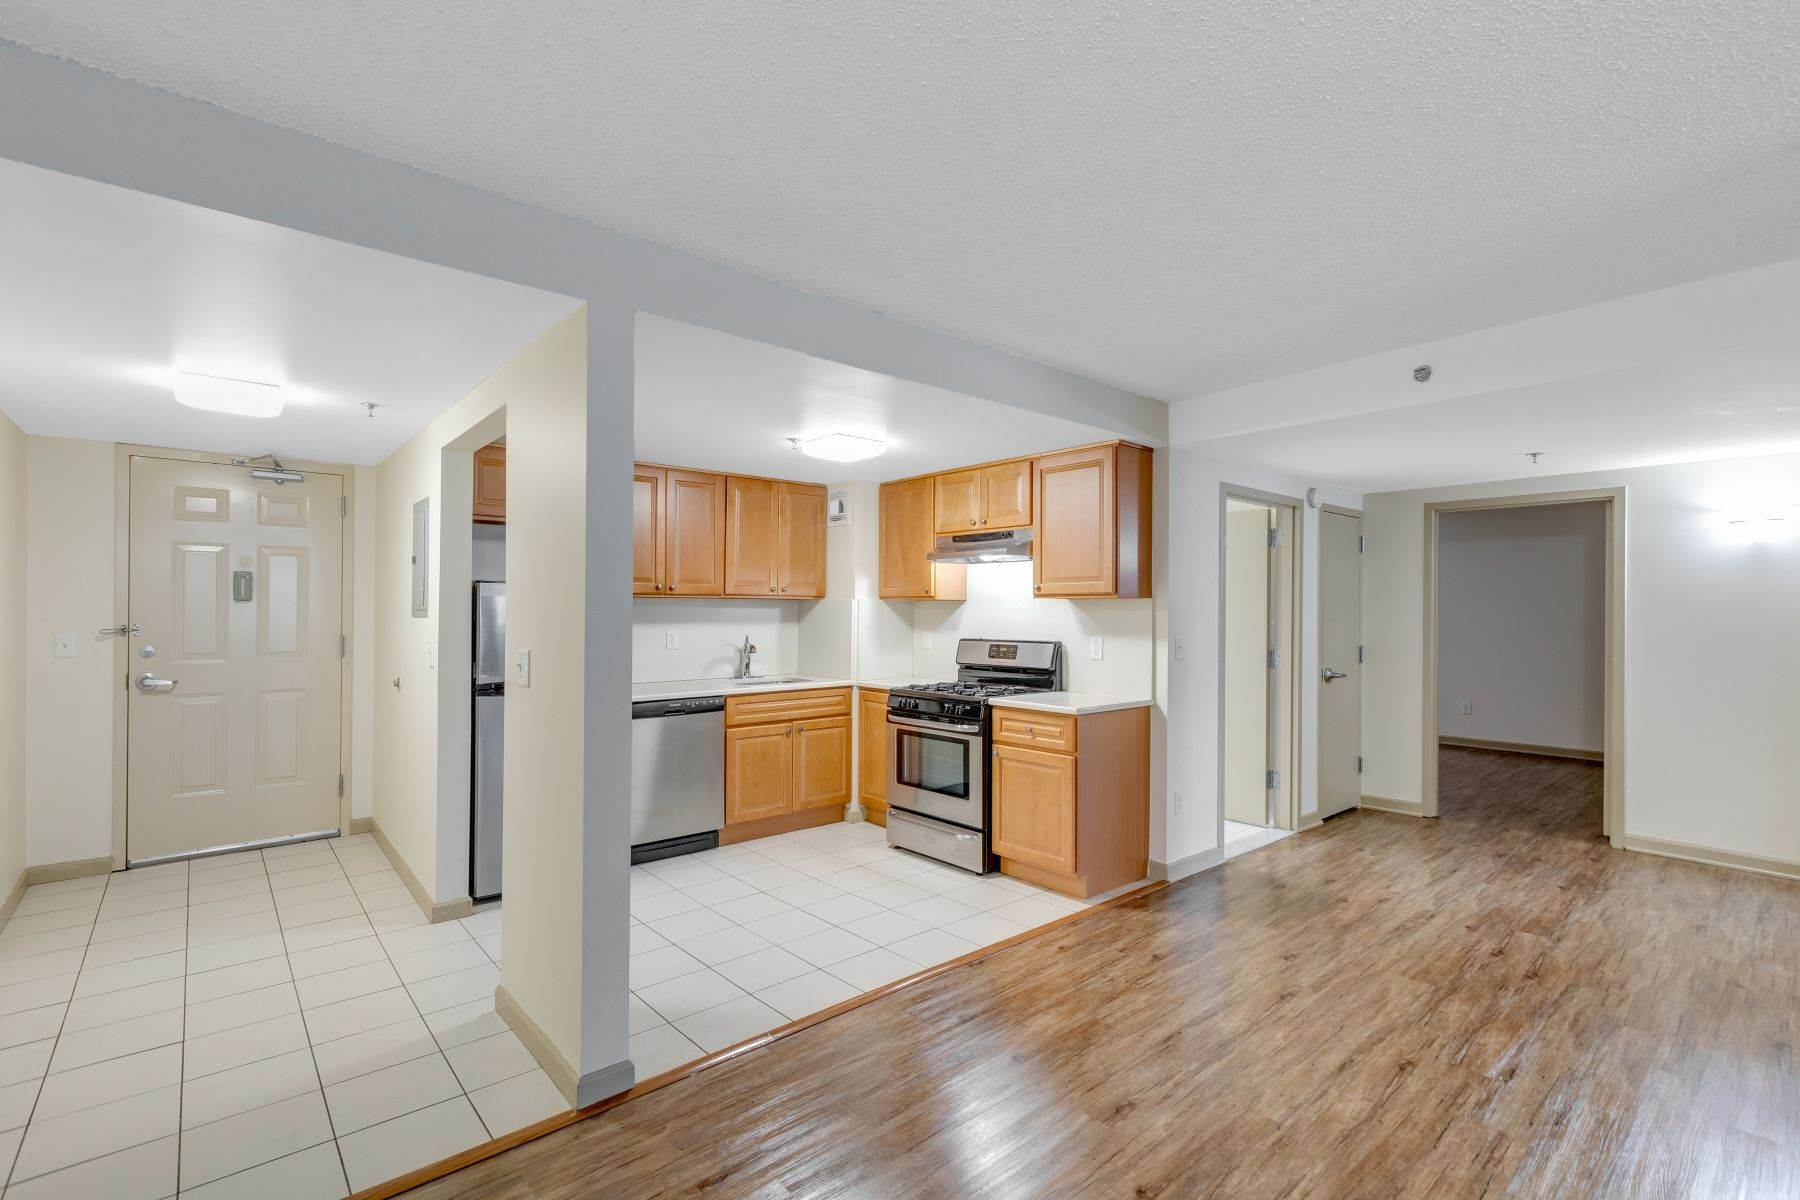 Other Residential Homes at Welcome to Peninsula Court. Spacious 2 bedroom in Elevator building . 22-34 West 25th Street, Unit 1C Bayonne, New Jersey 07002 United States